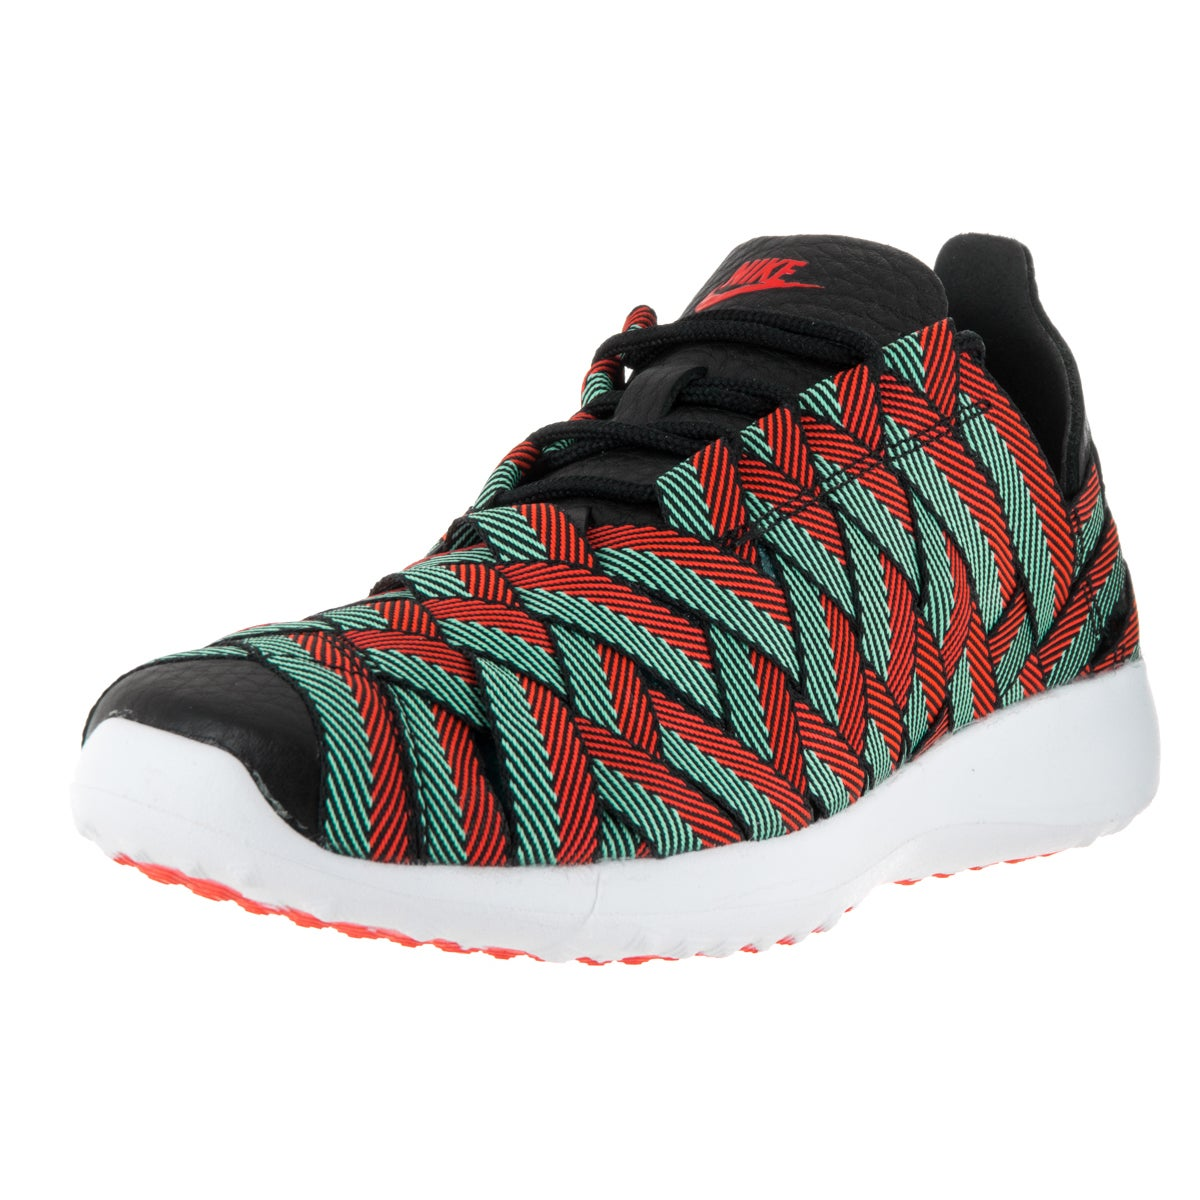 Nike Women's Juvenate Woven Black, Crimson, Turquoise, an...